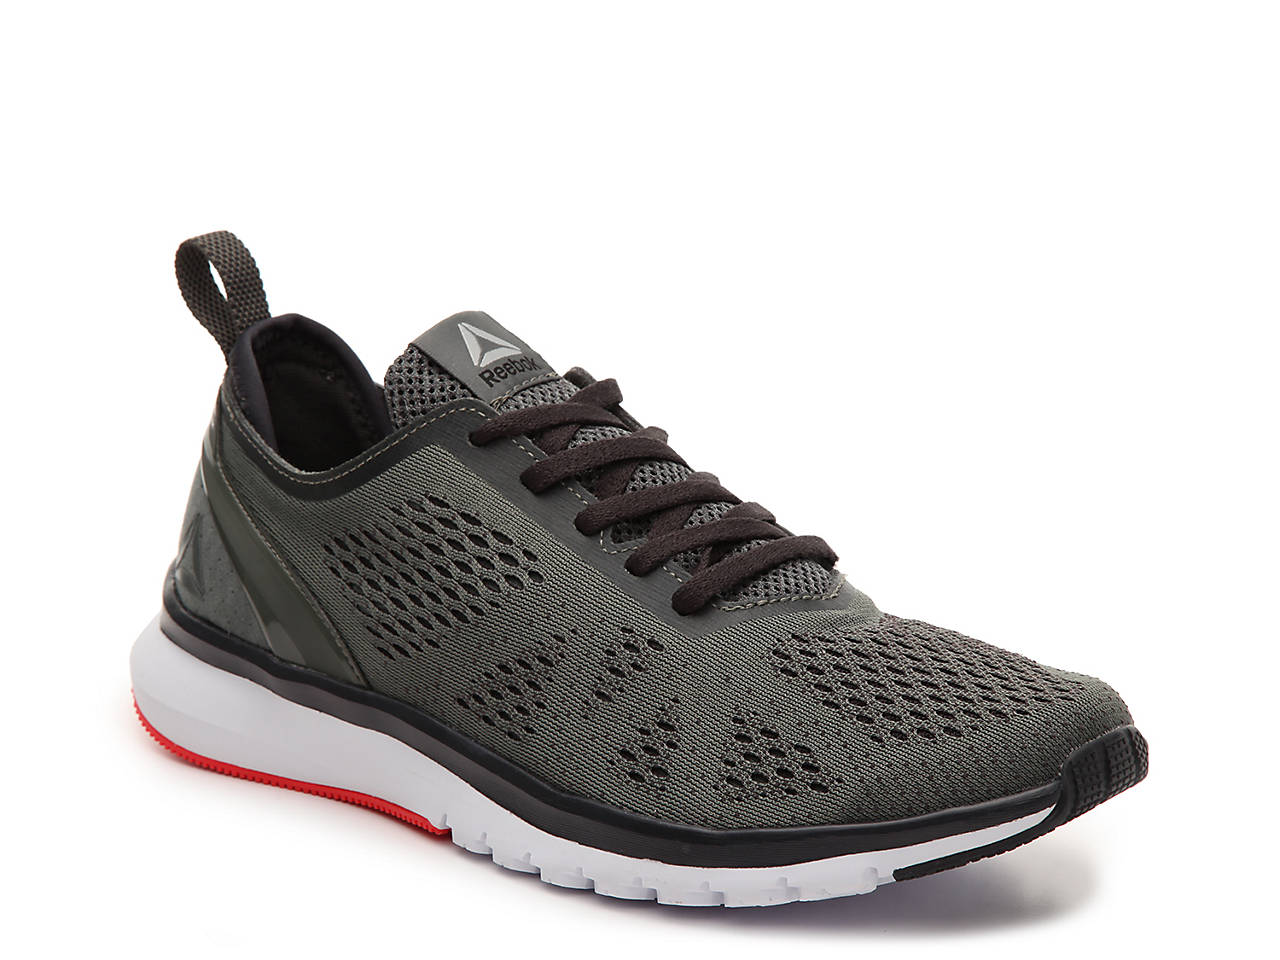 670d4214858 ZPrint Run Smooth Lightweight Running Shoe - Men's